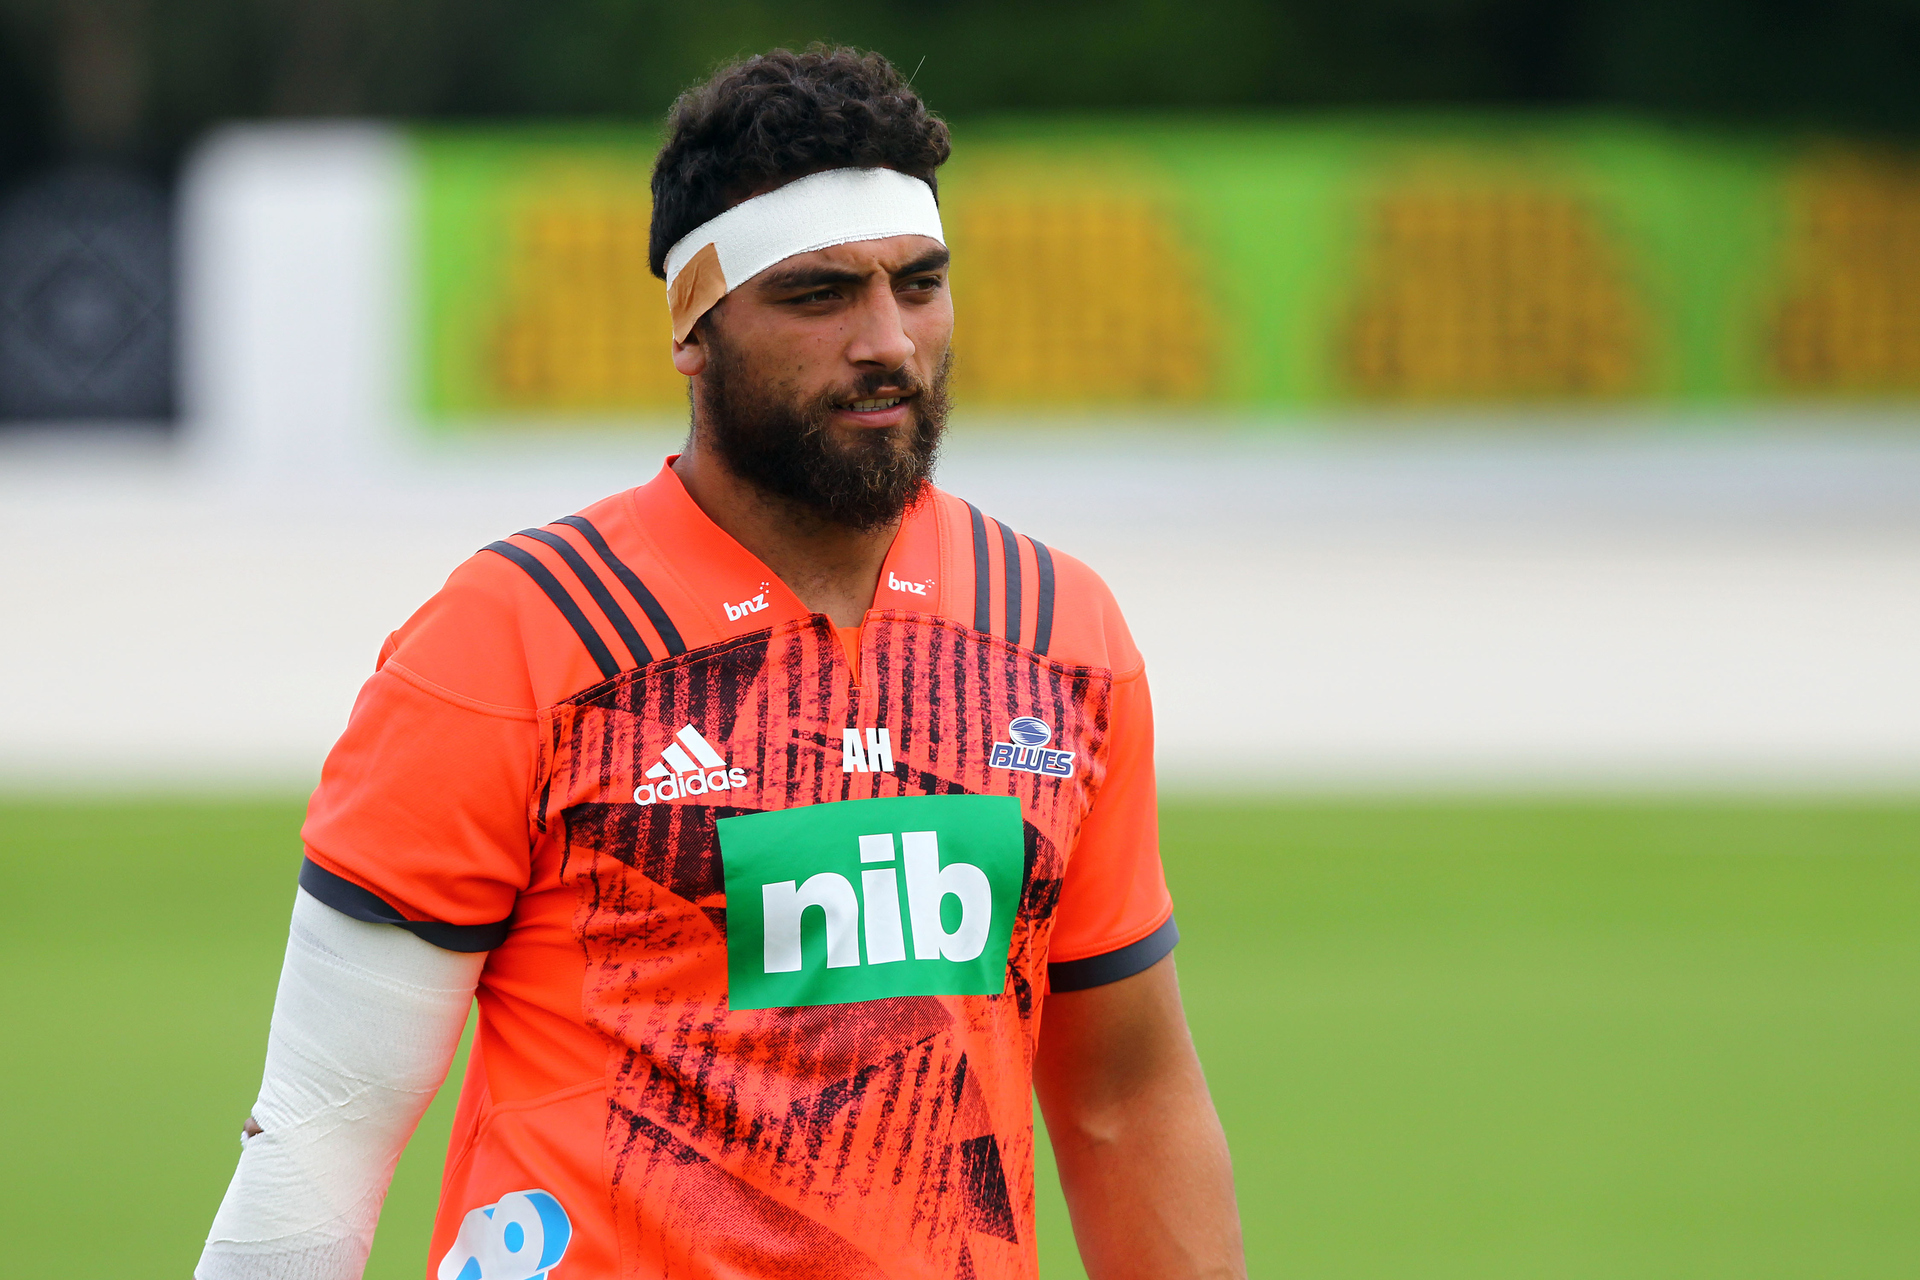 Super Rugby: Big Blues prop Alex Hodgman is finally going places